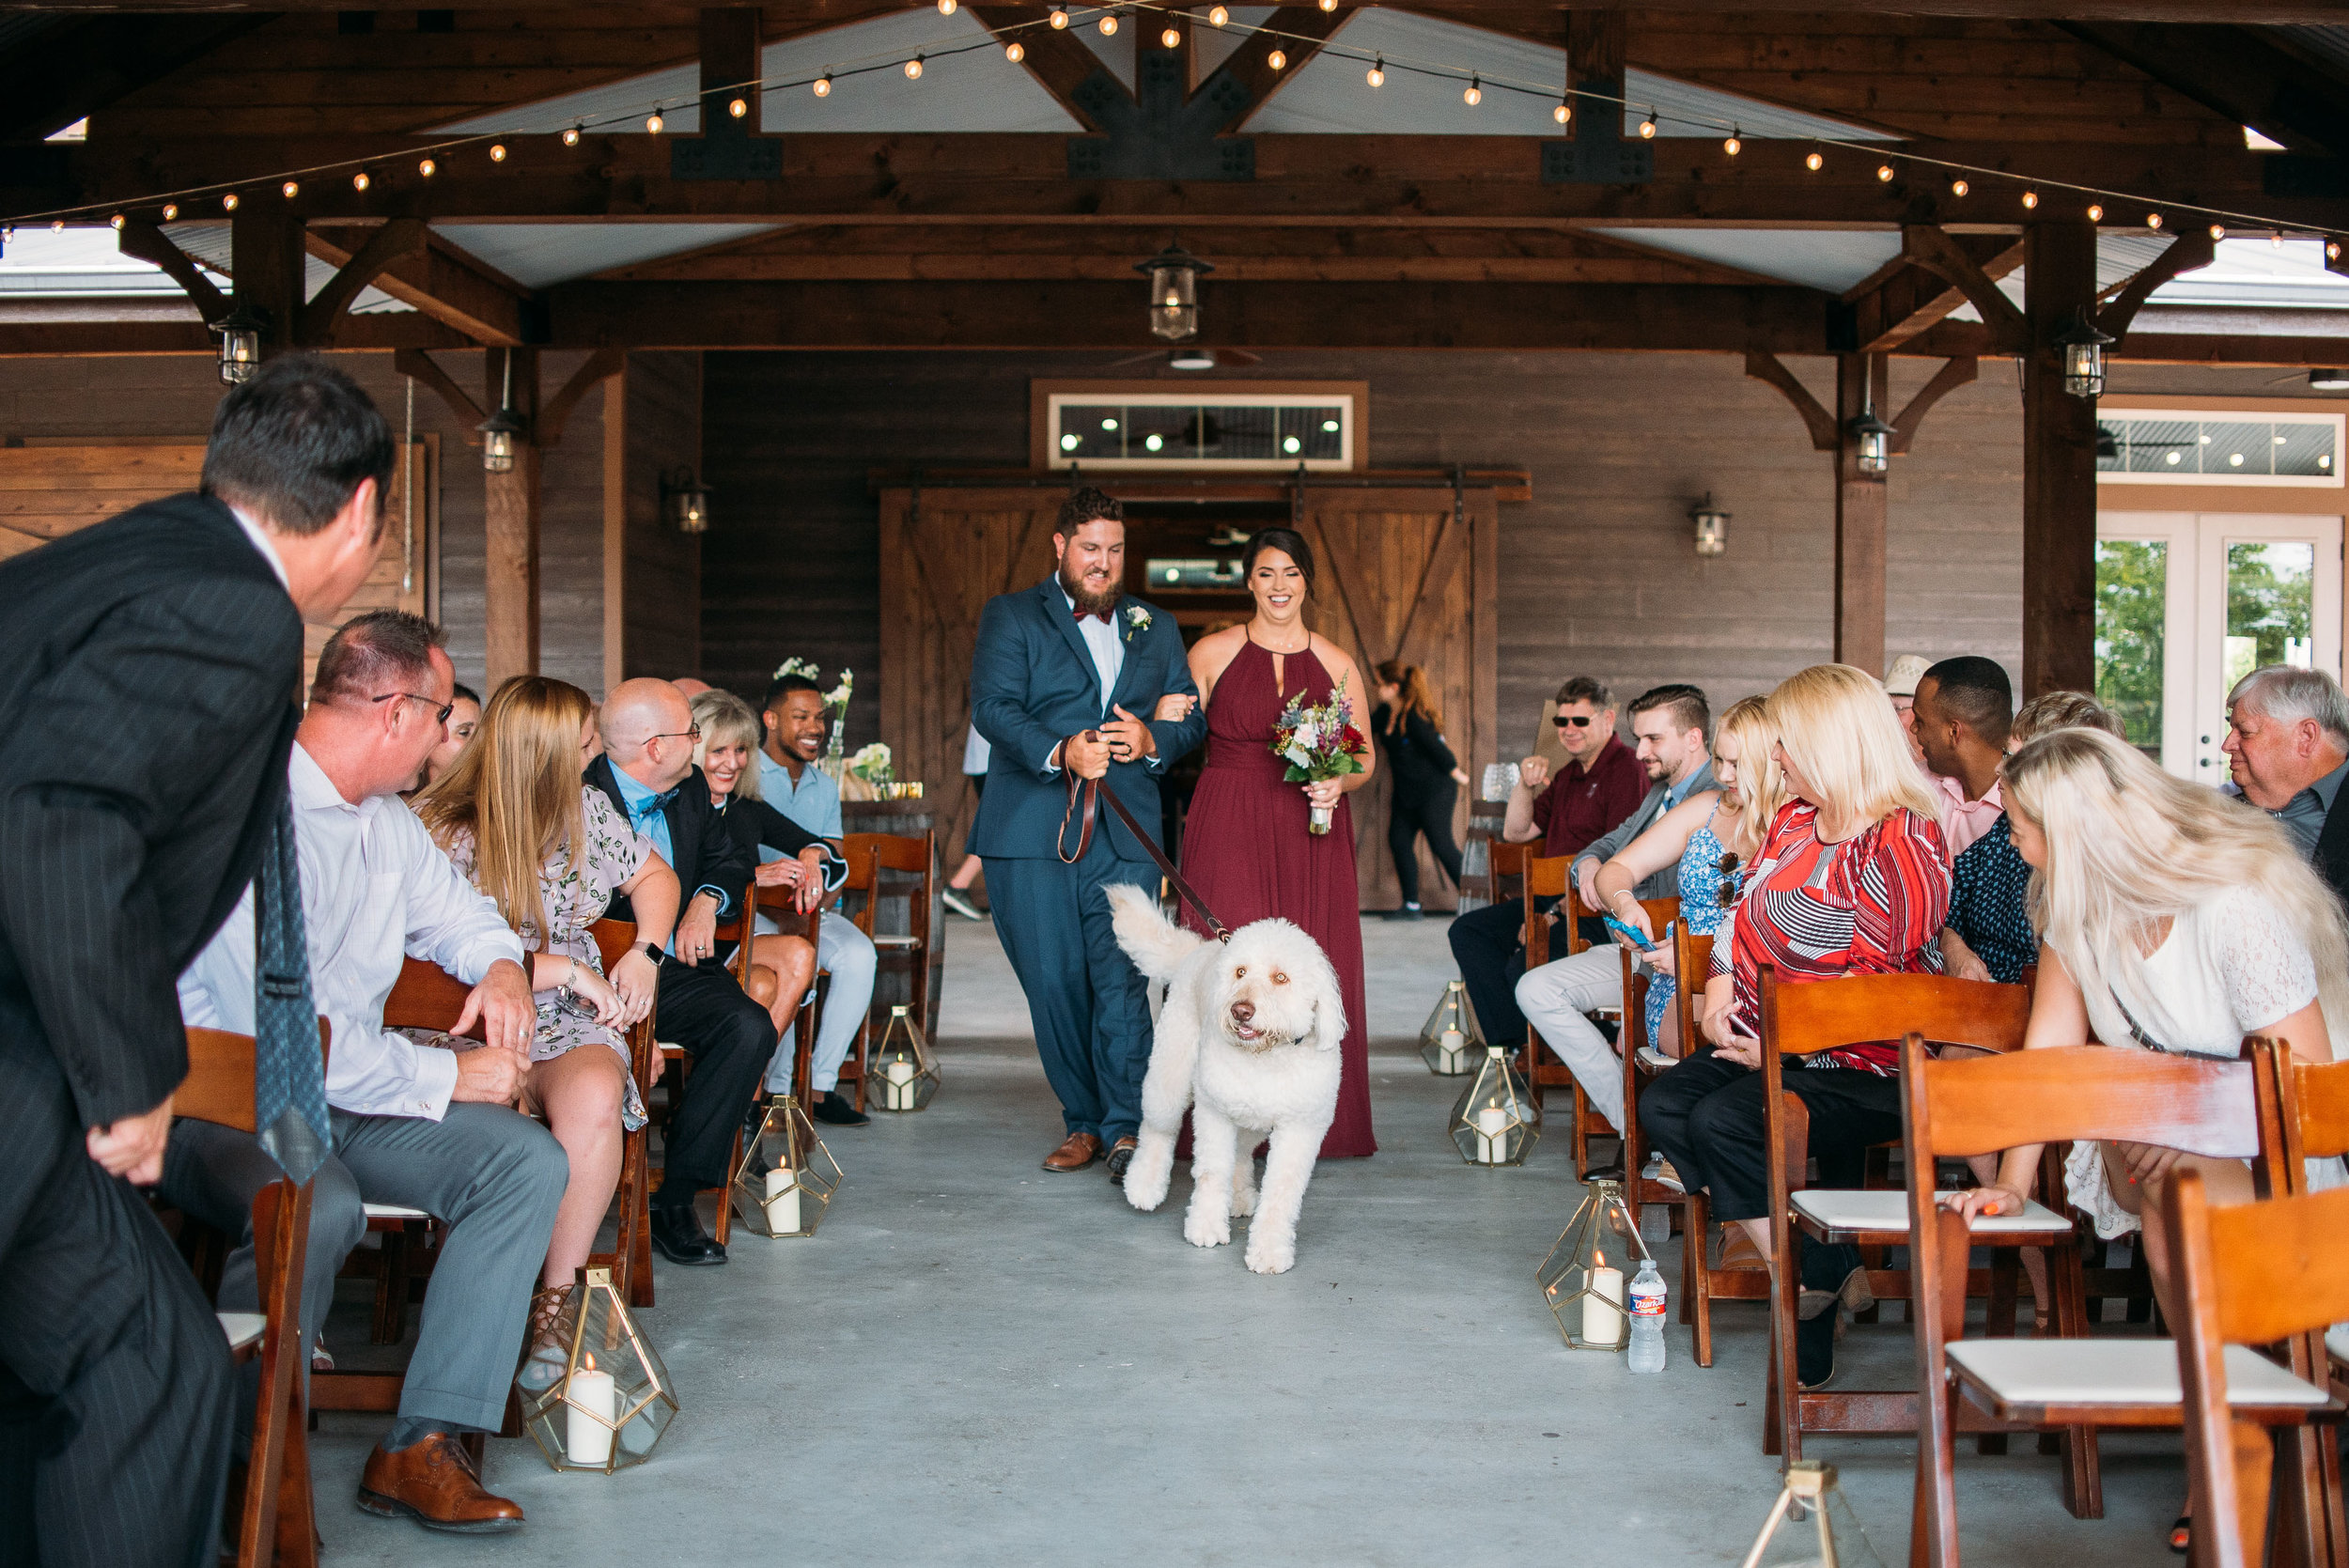 EmilyCody-Peach-Creek-Ranch-Wedding-Ceremony-Bridals-Engagement-College-Station-Photographer-Videographer-San-Angel-Photo-0156.jpg